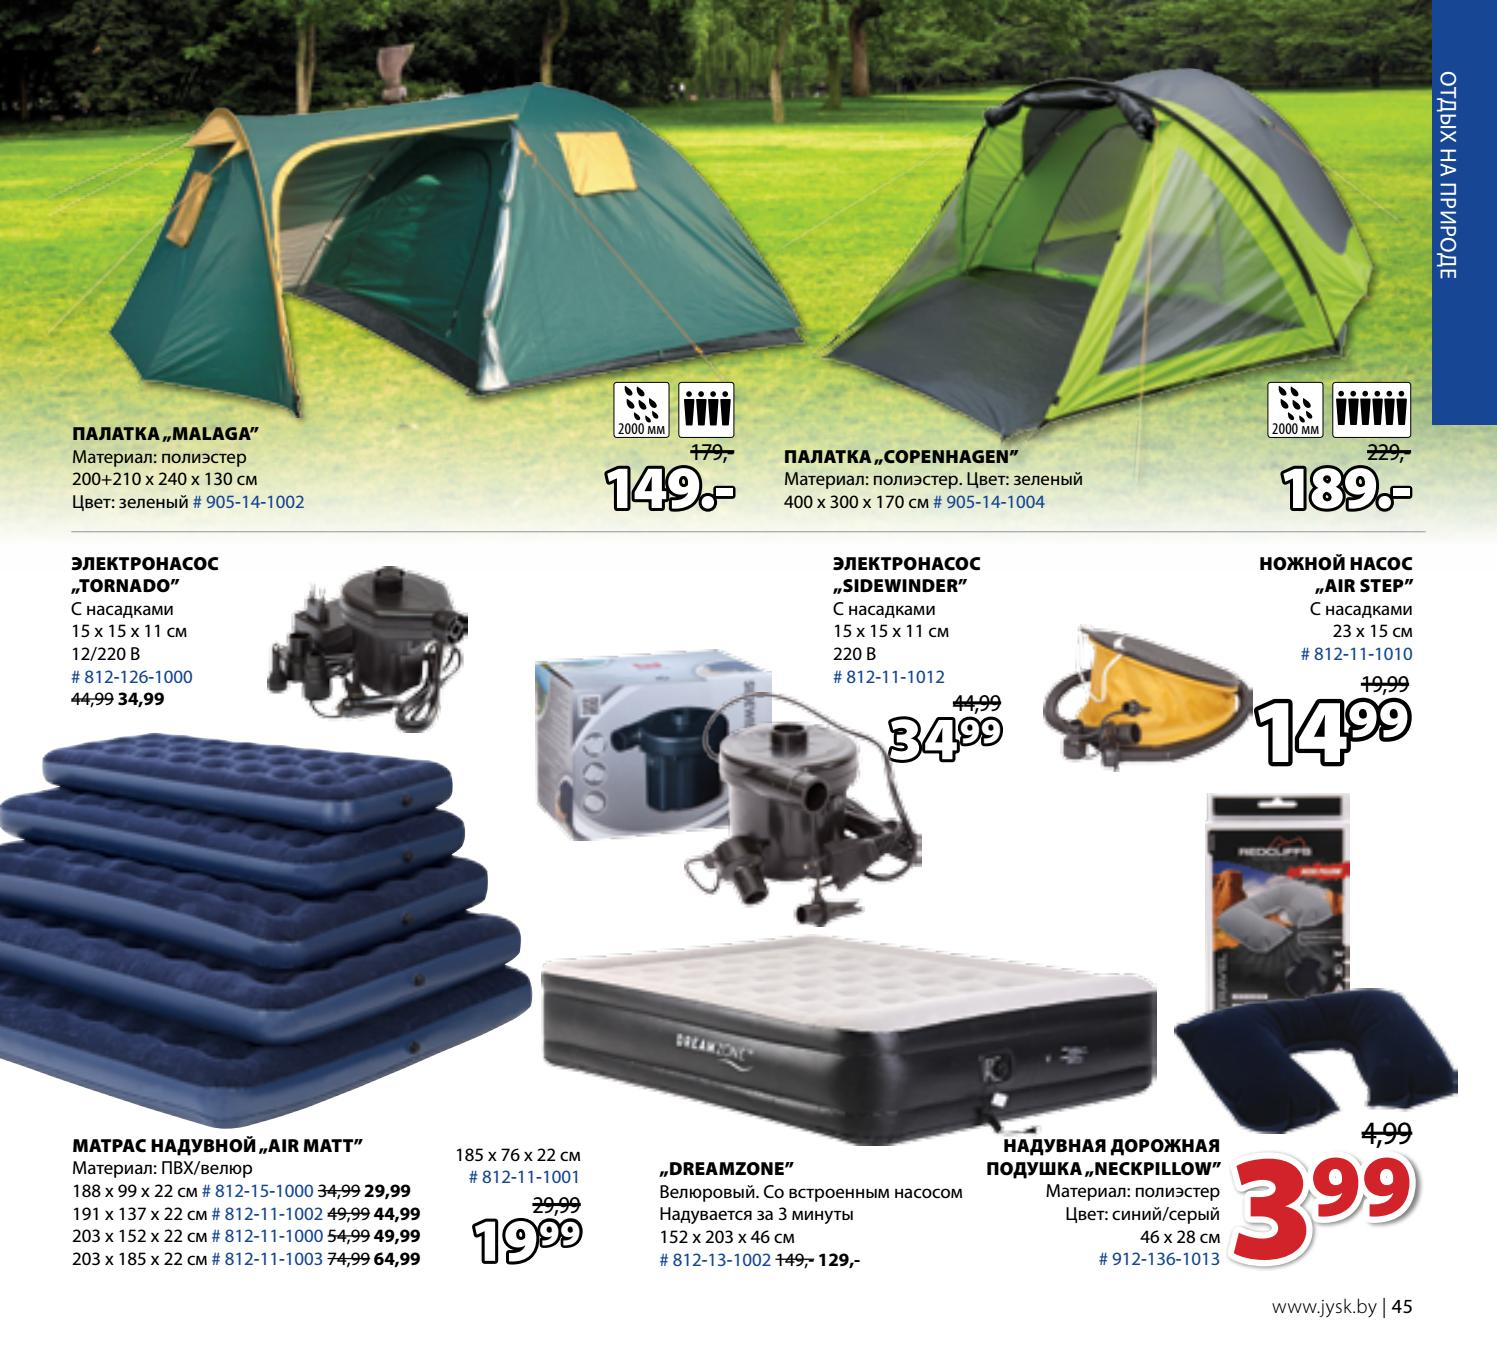 Jysk Tent 2017 Summer Catalogue By By Jysk Issuu